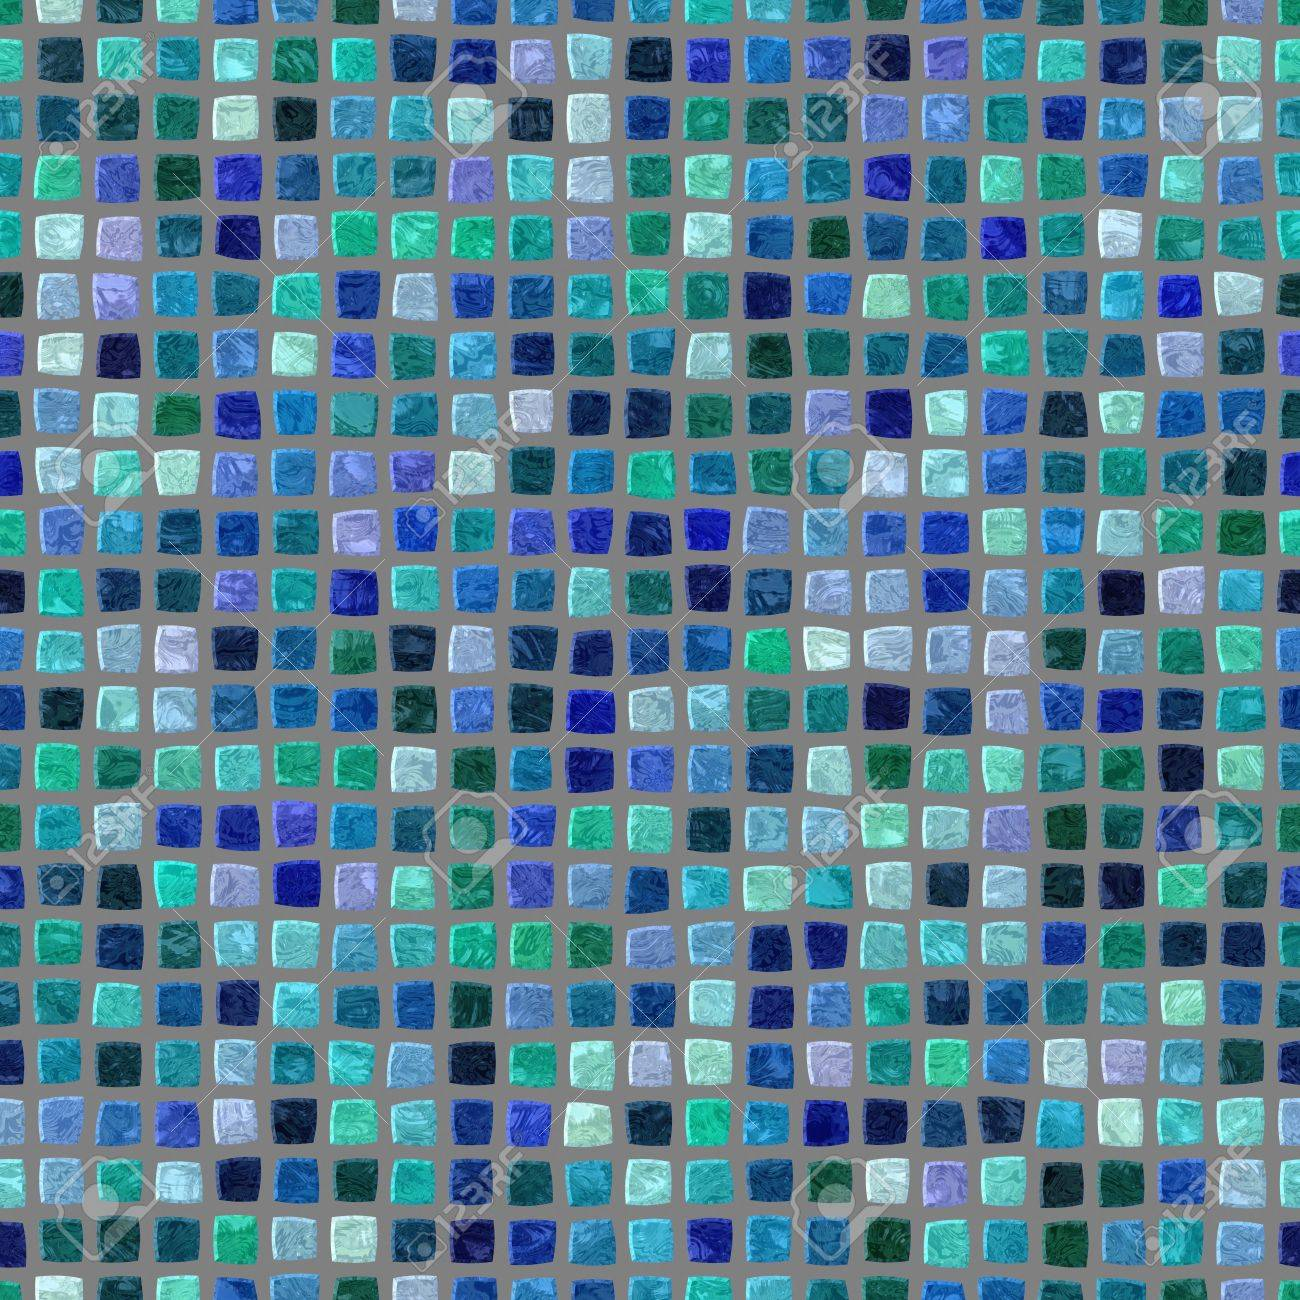 Blue Turquoise Lilac Retro Mosaic Pattern - Seamless Digitally ...